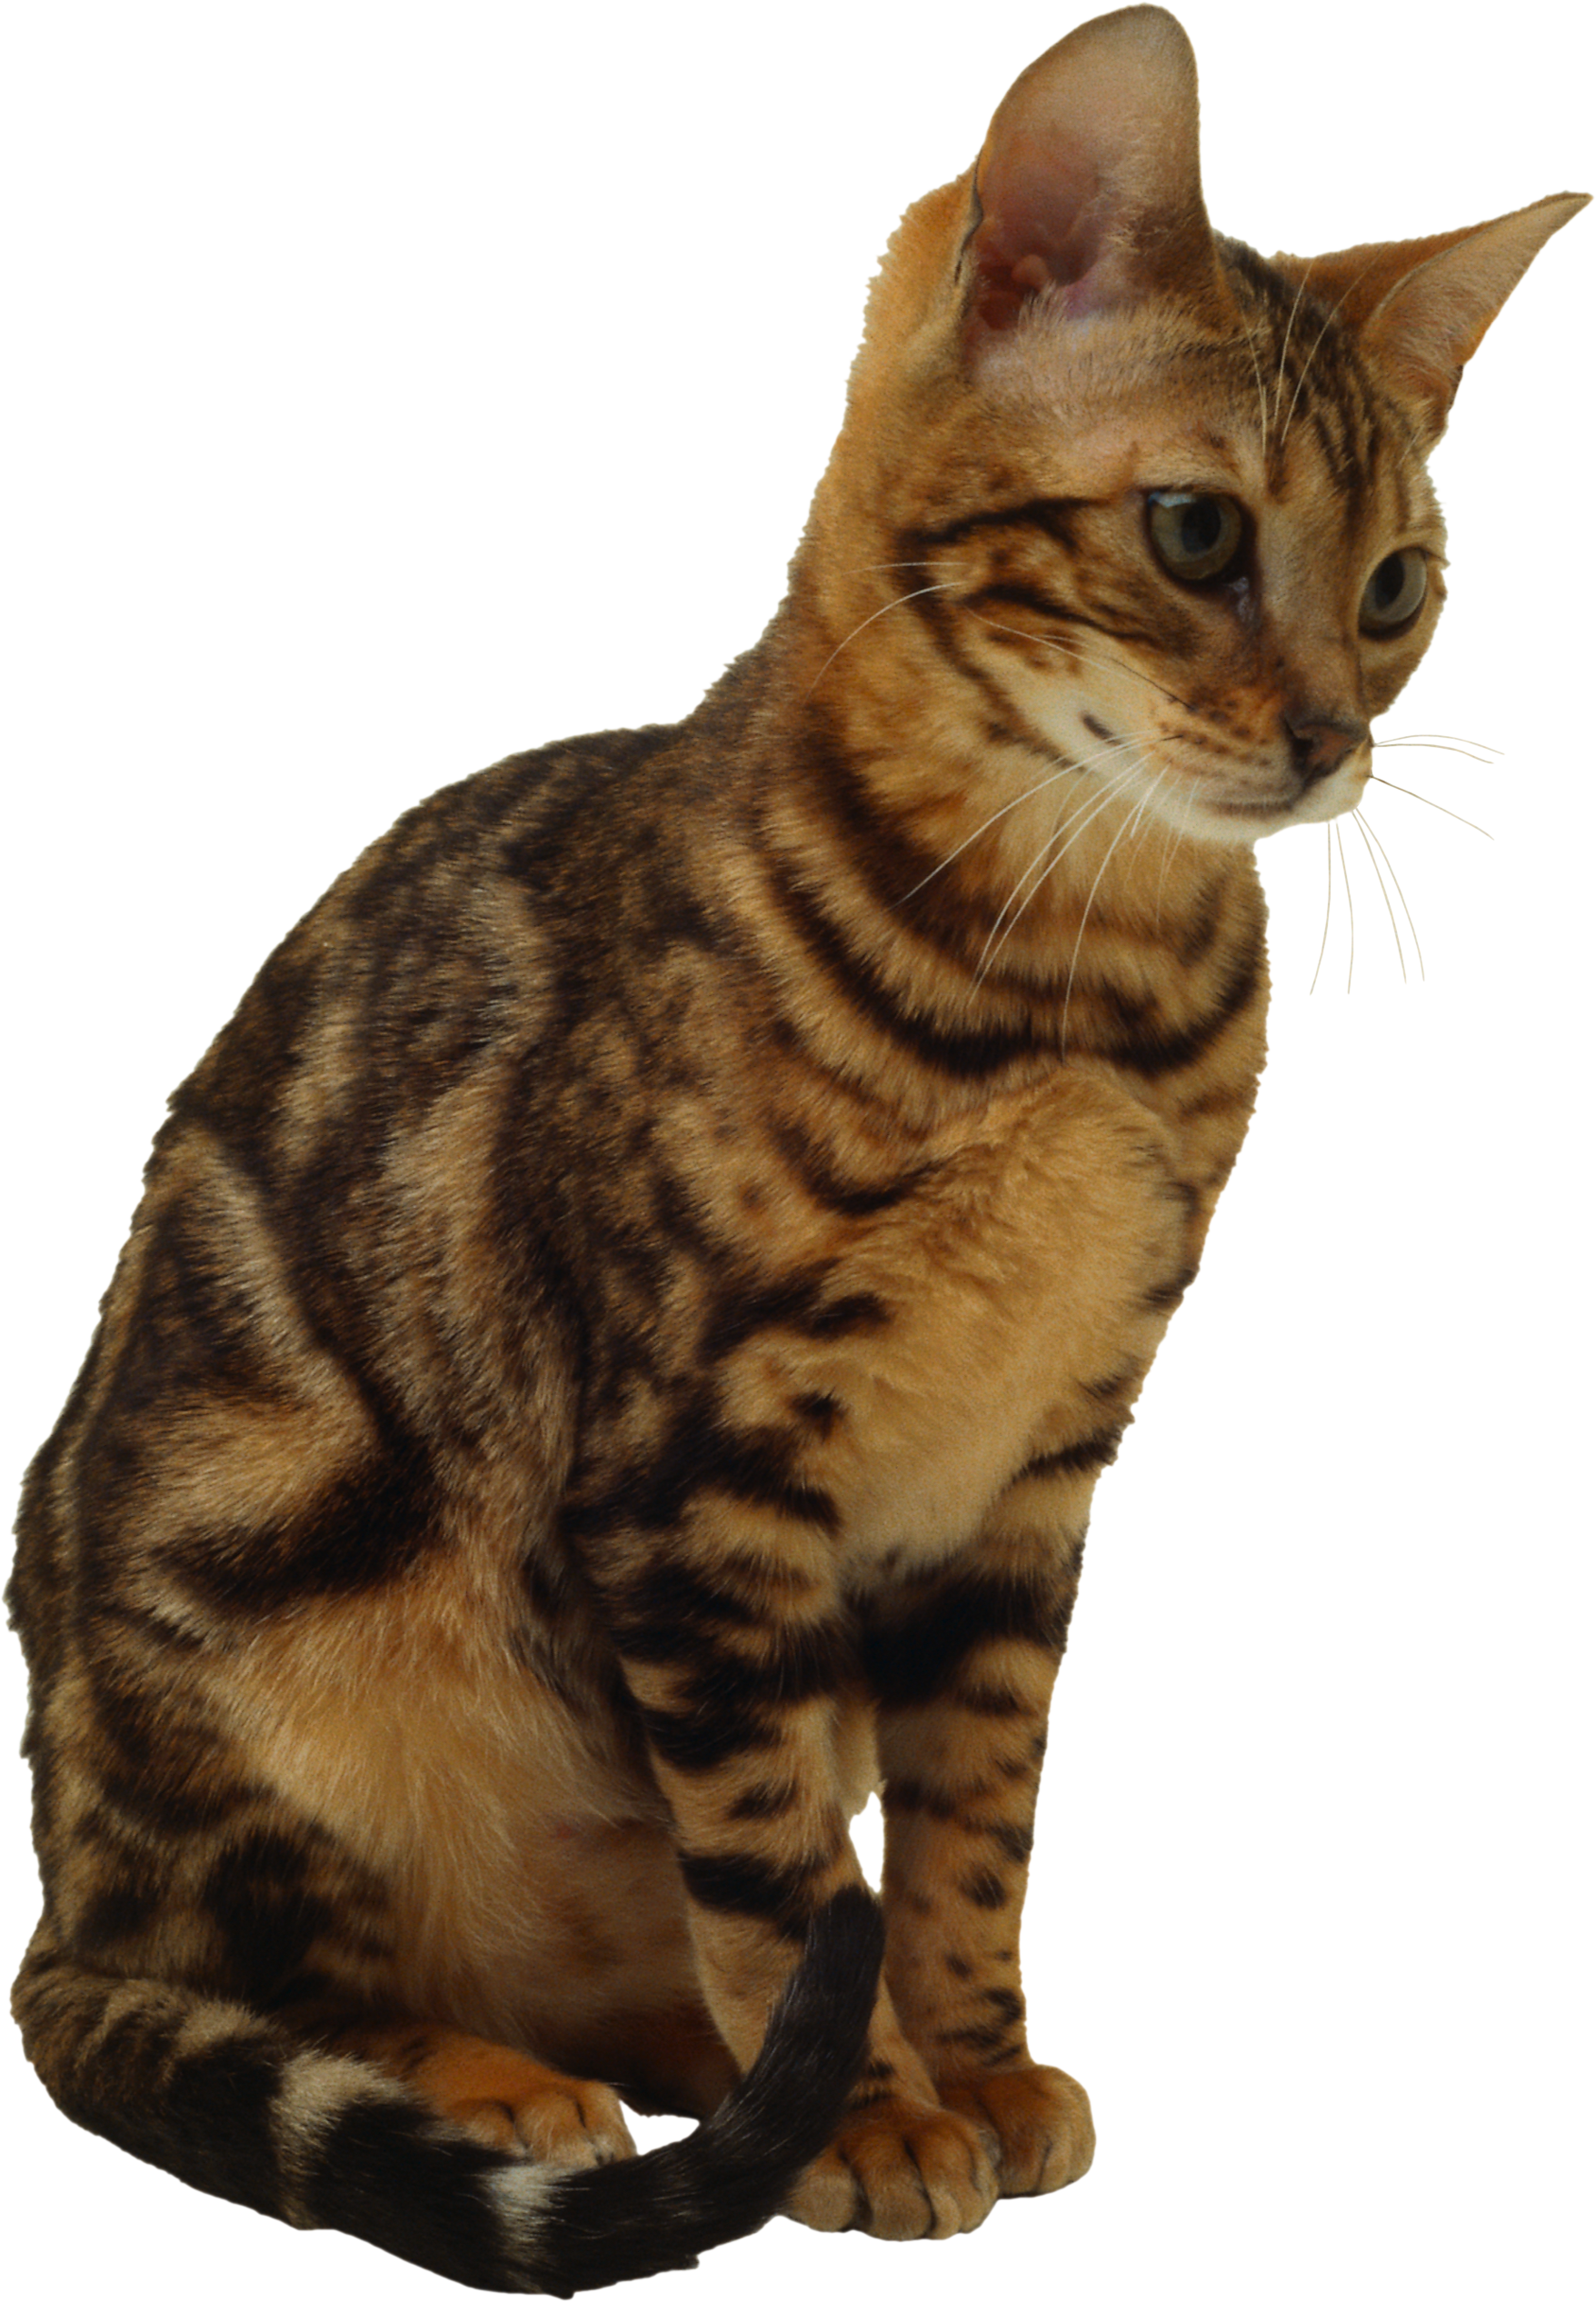 Sitting Cat PNG Image , PurePNG